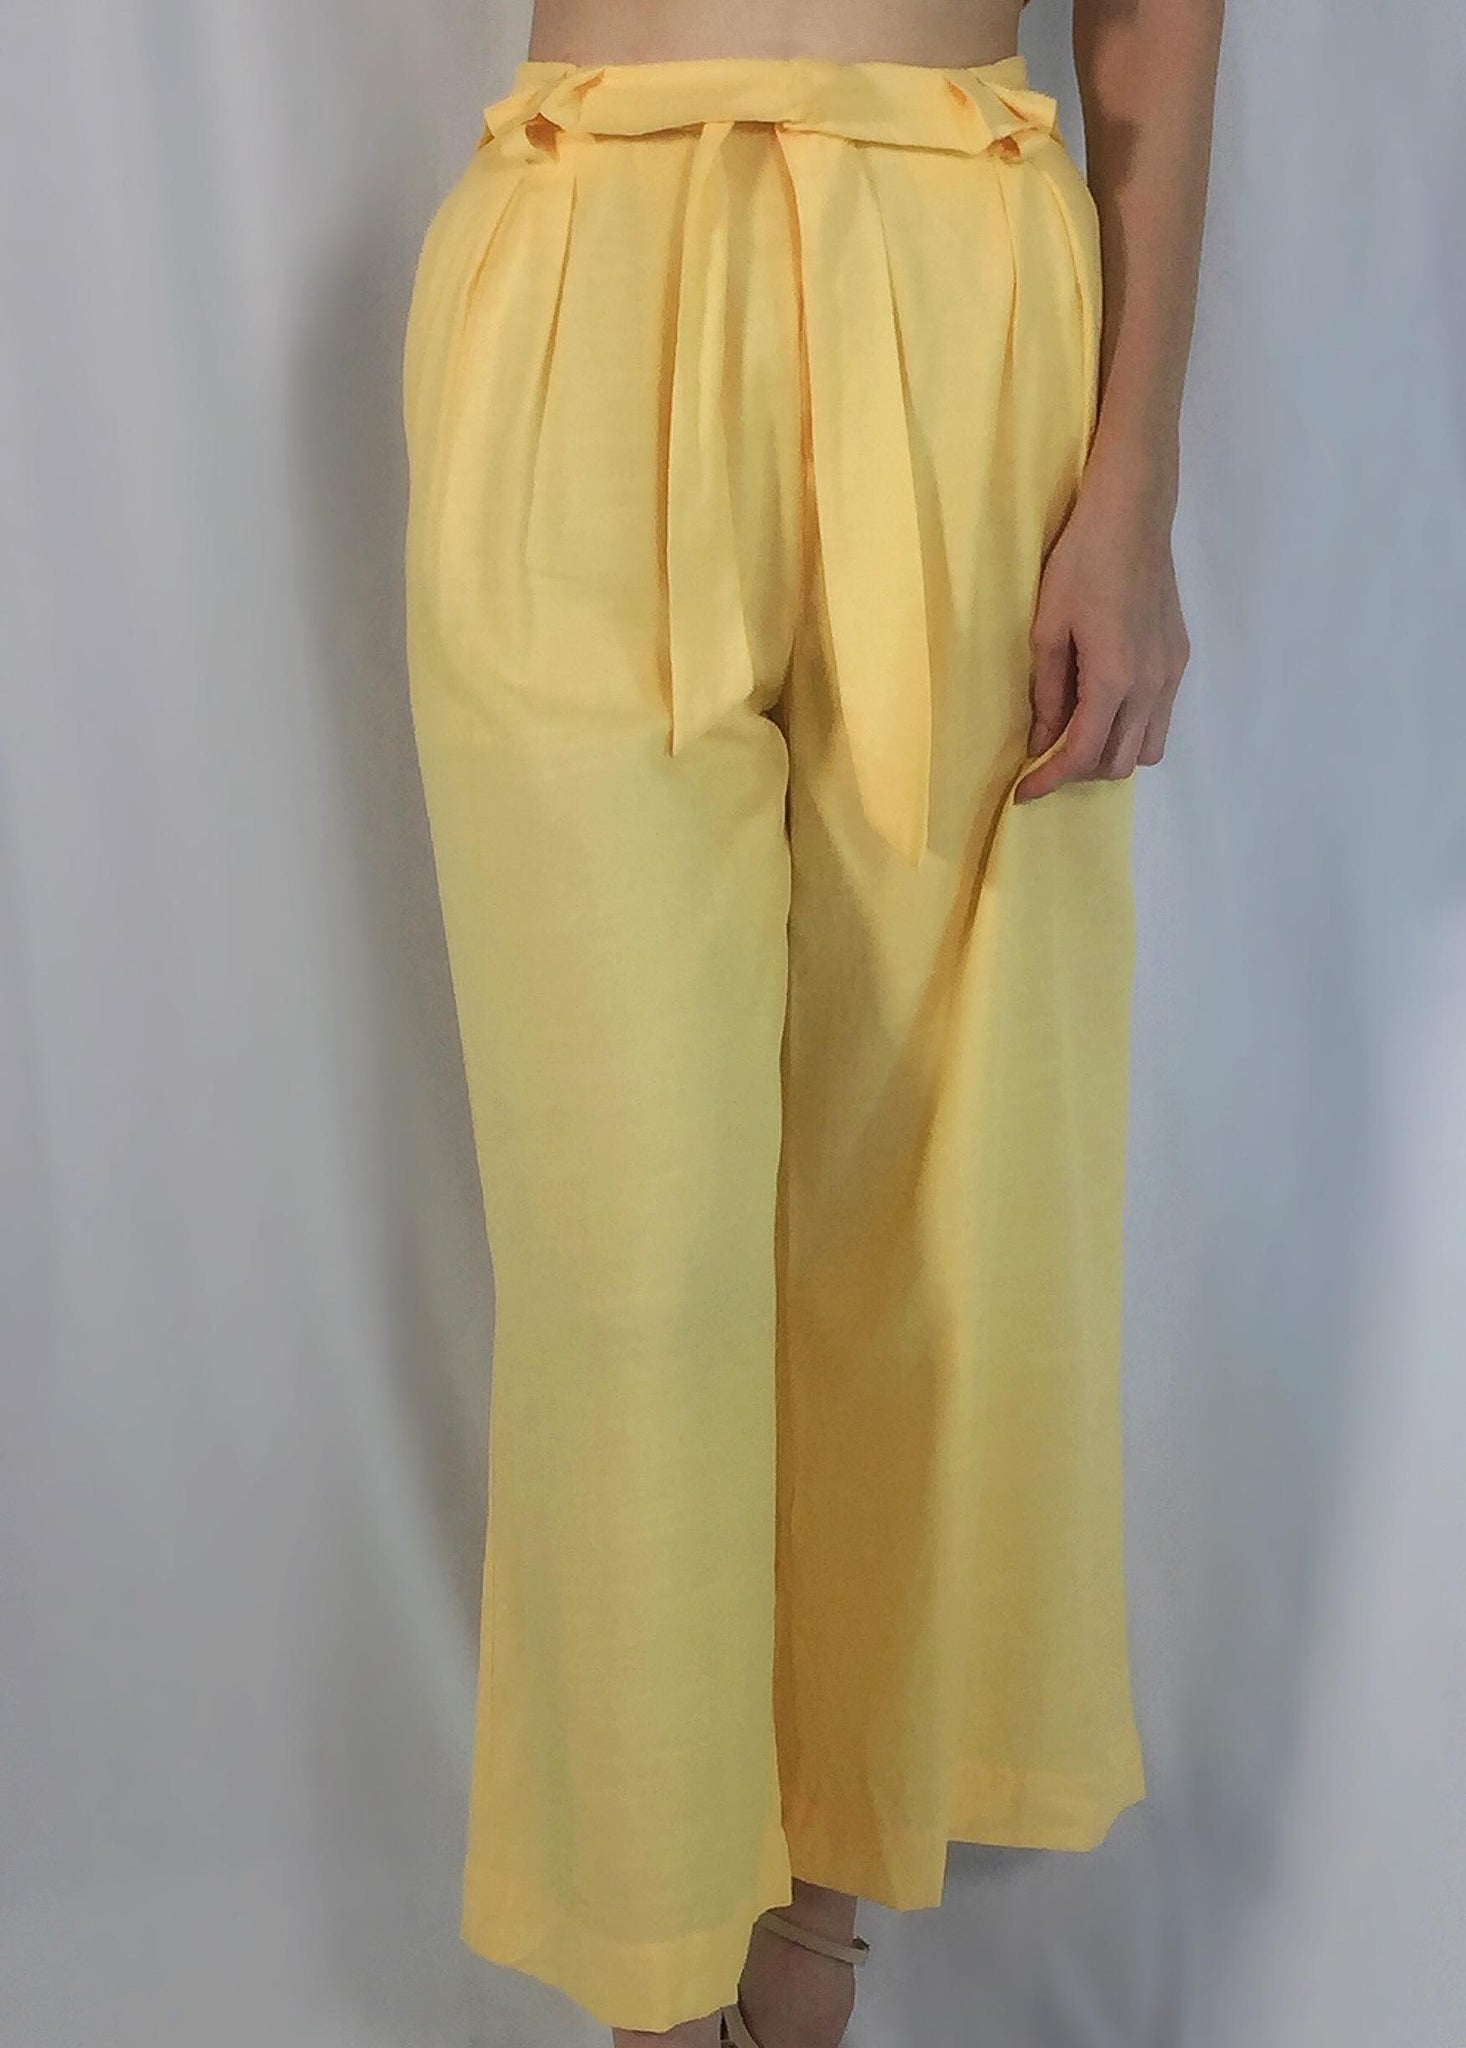 FLOWING YELLOW PANTS